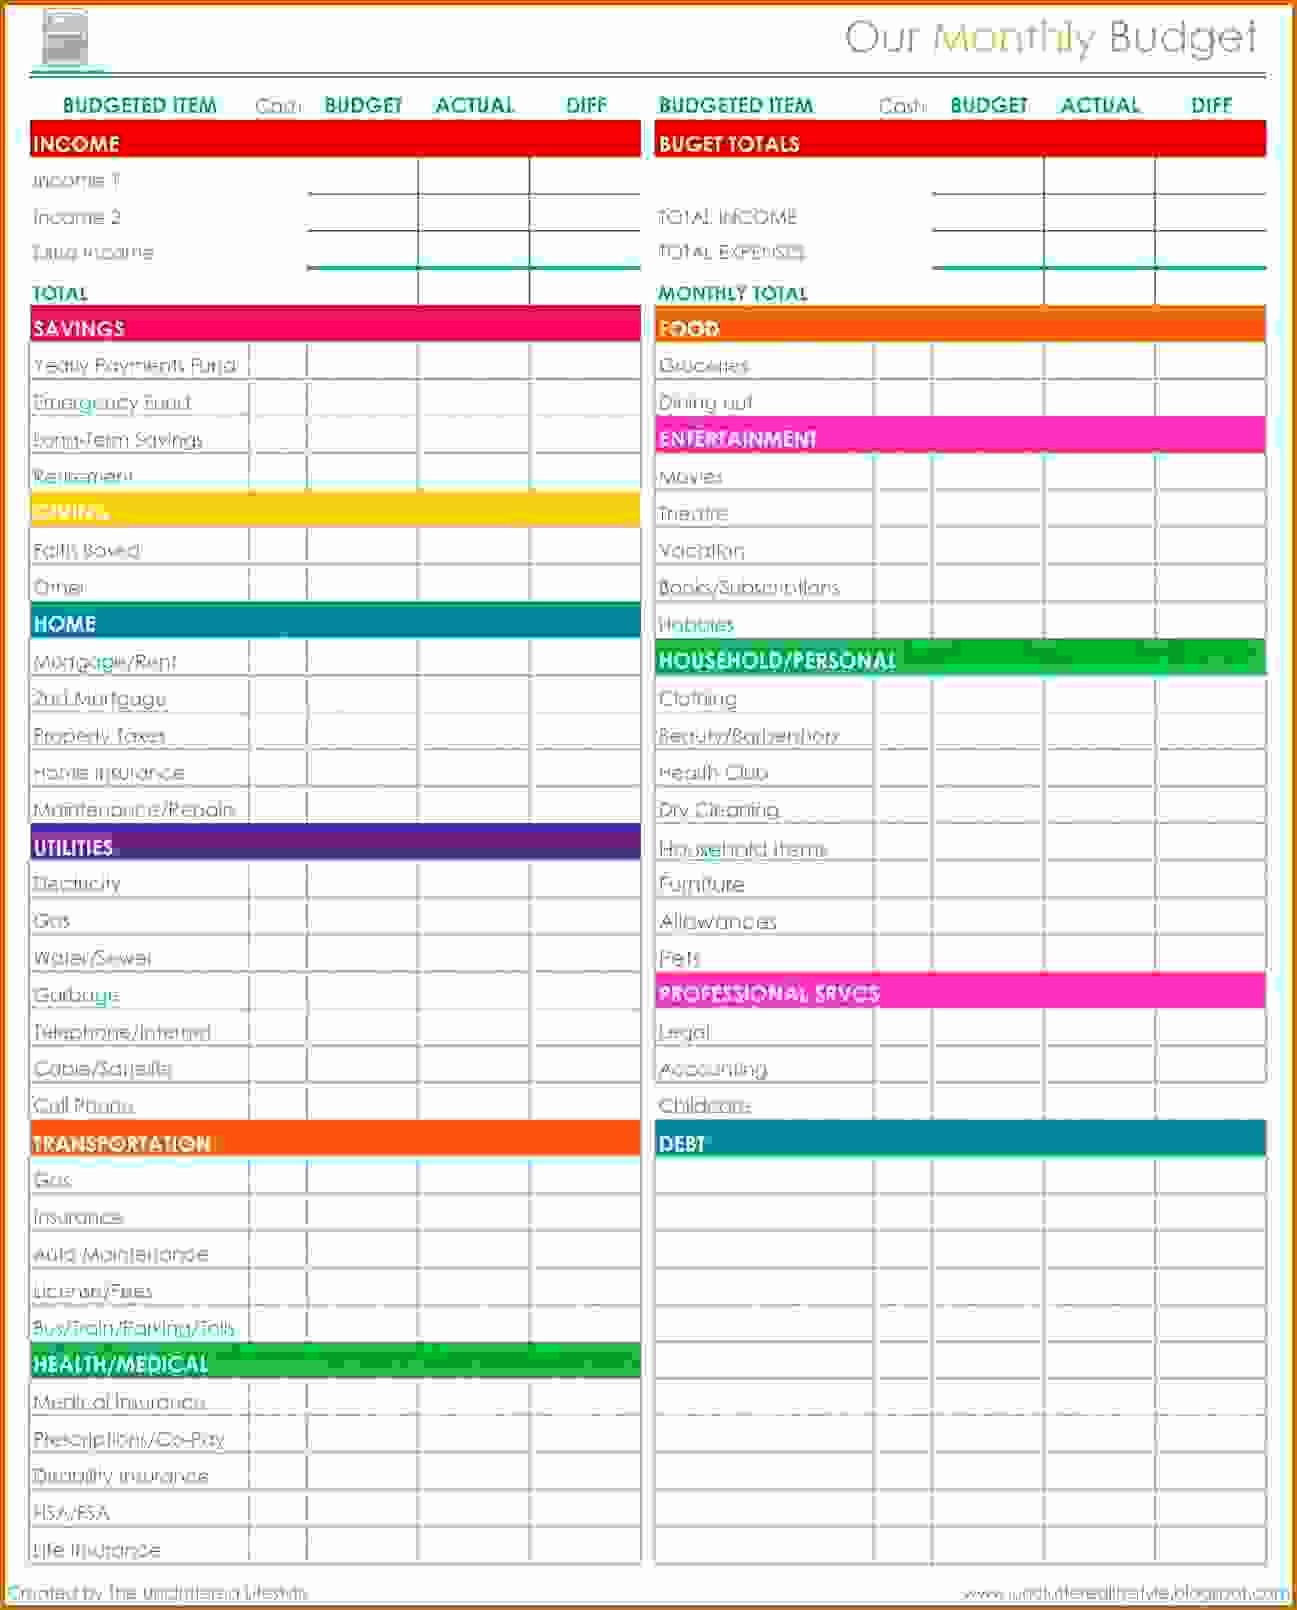 Best Budget Excel Template 2016 Unique 11 Monthly Bud Spreadsheet Free